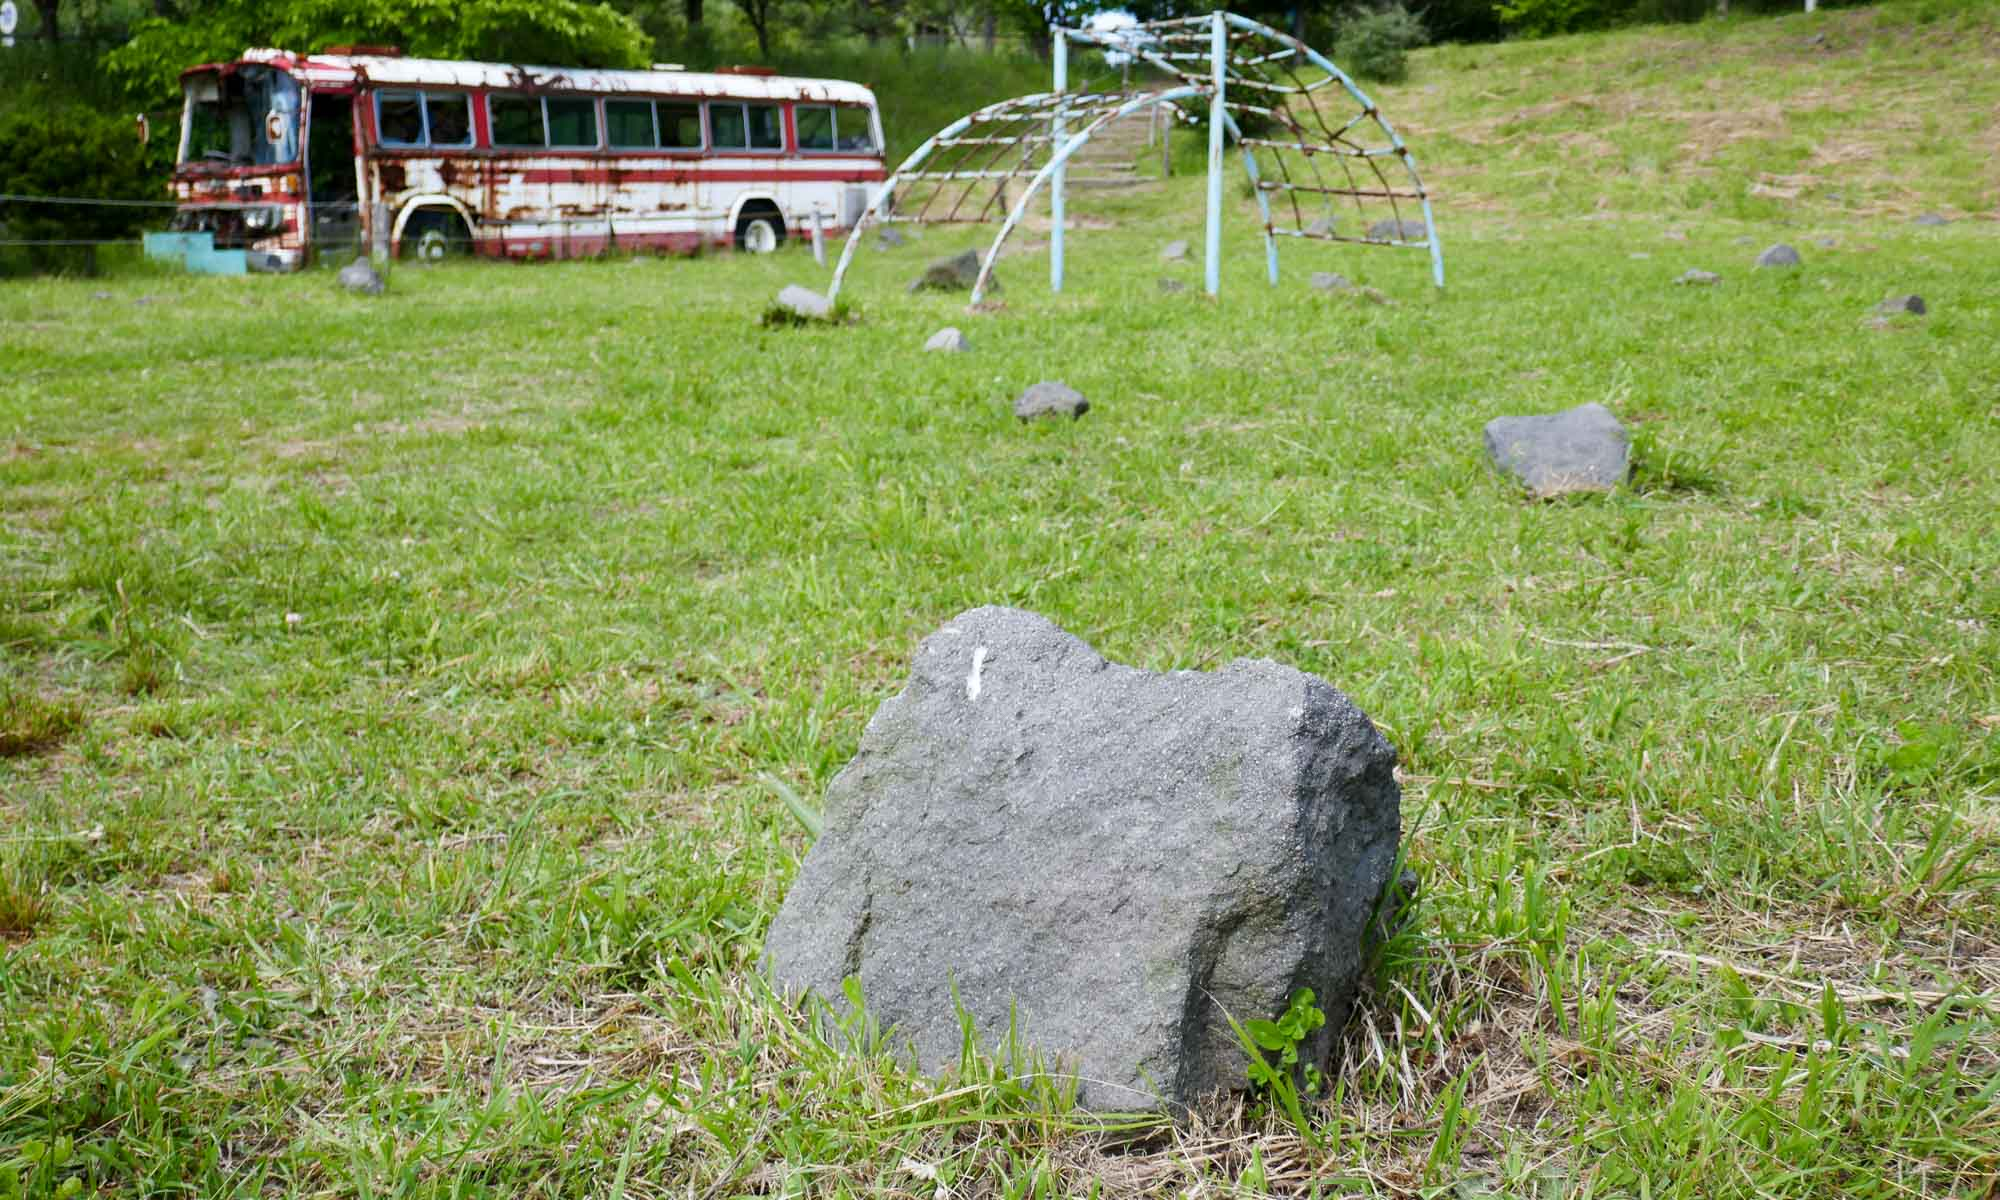 Rocks from the eruption at the kindergarten